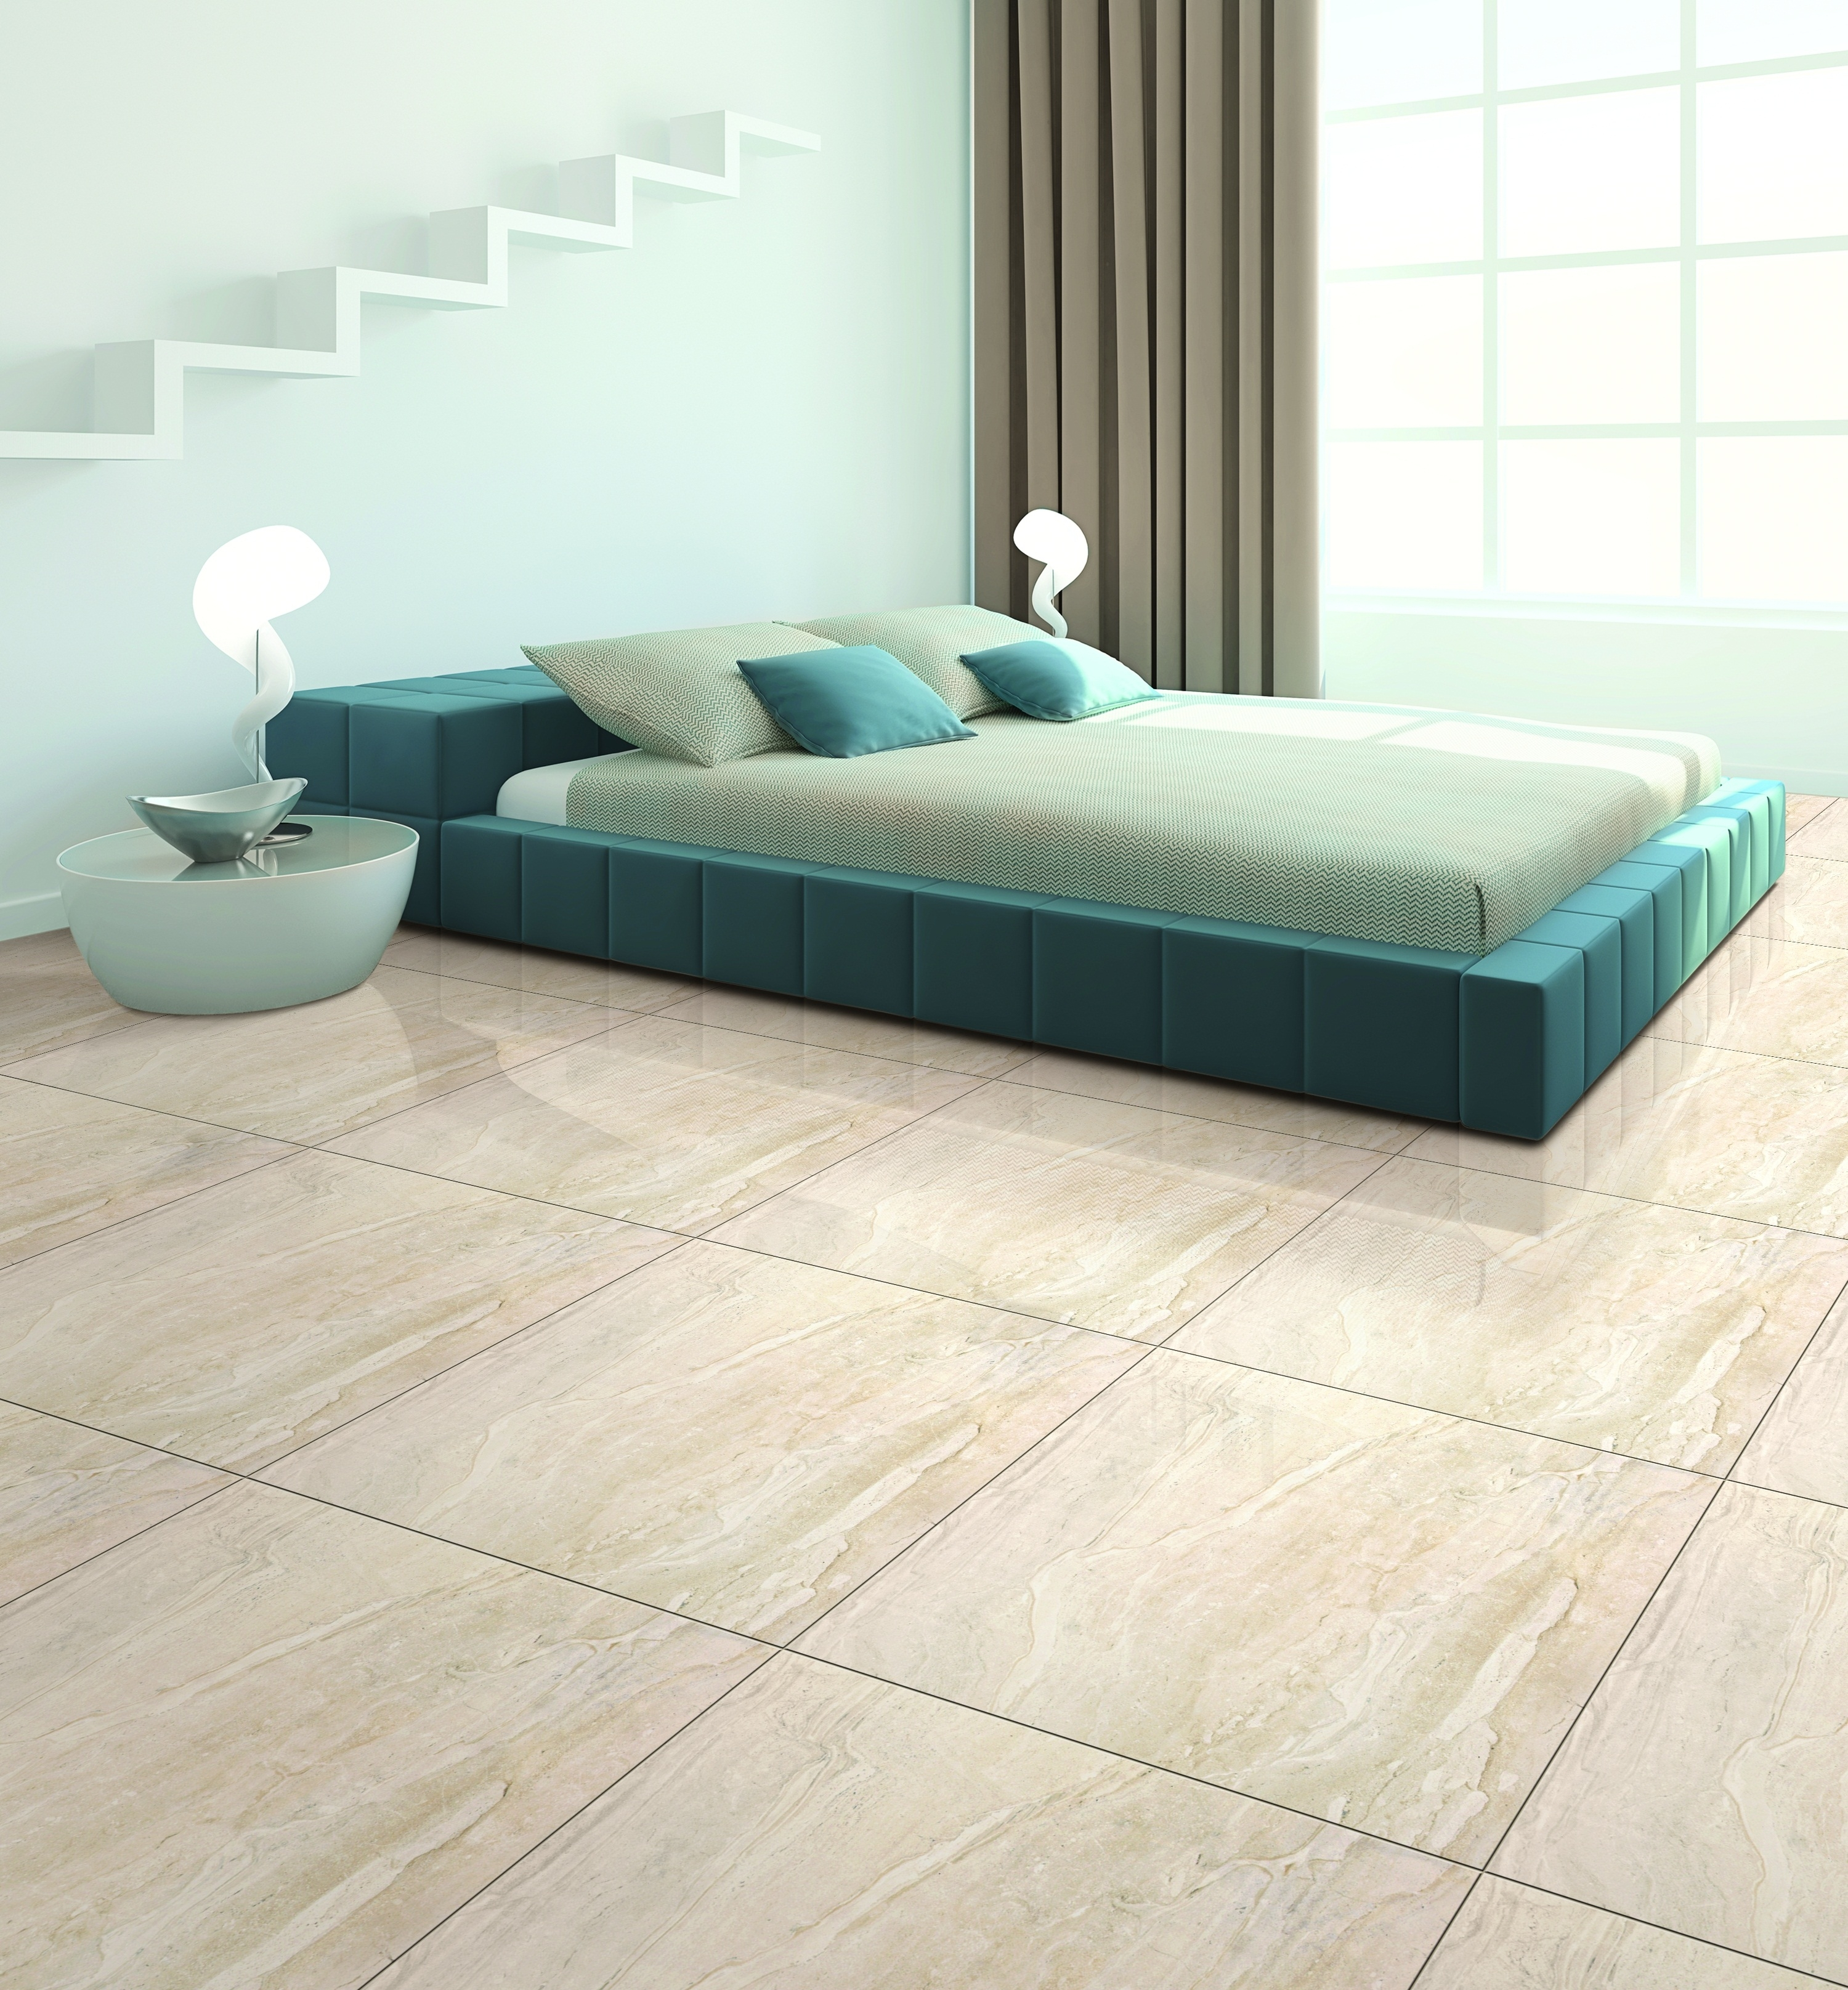 Best tiles in india for floor thefloors co for Deck tiles india